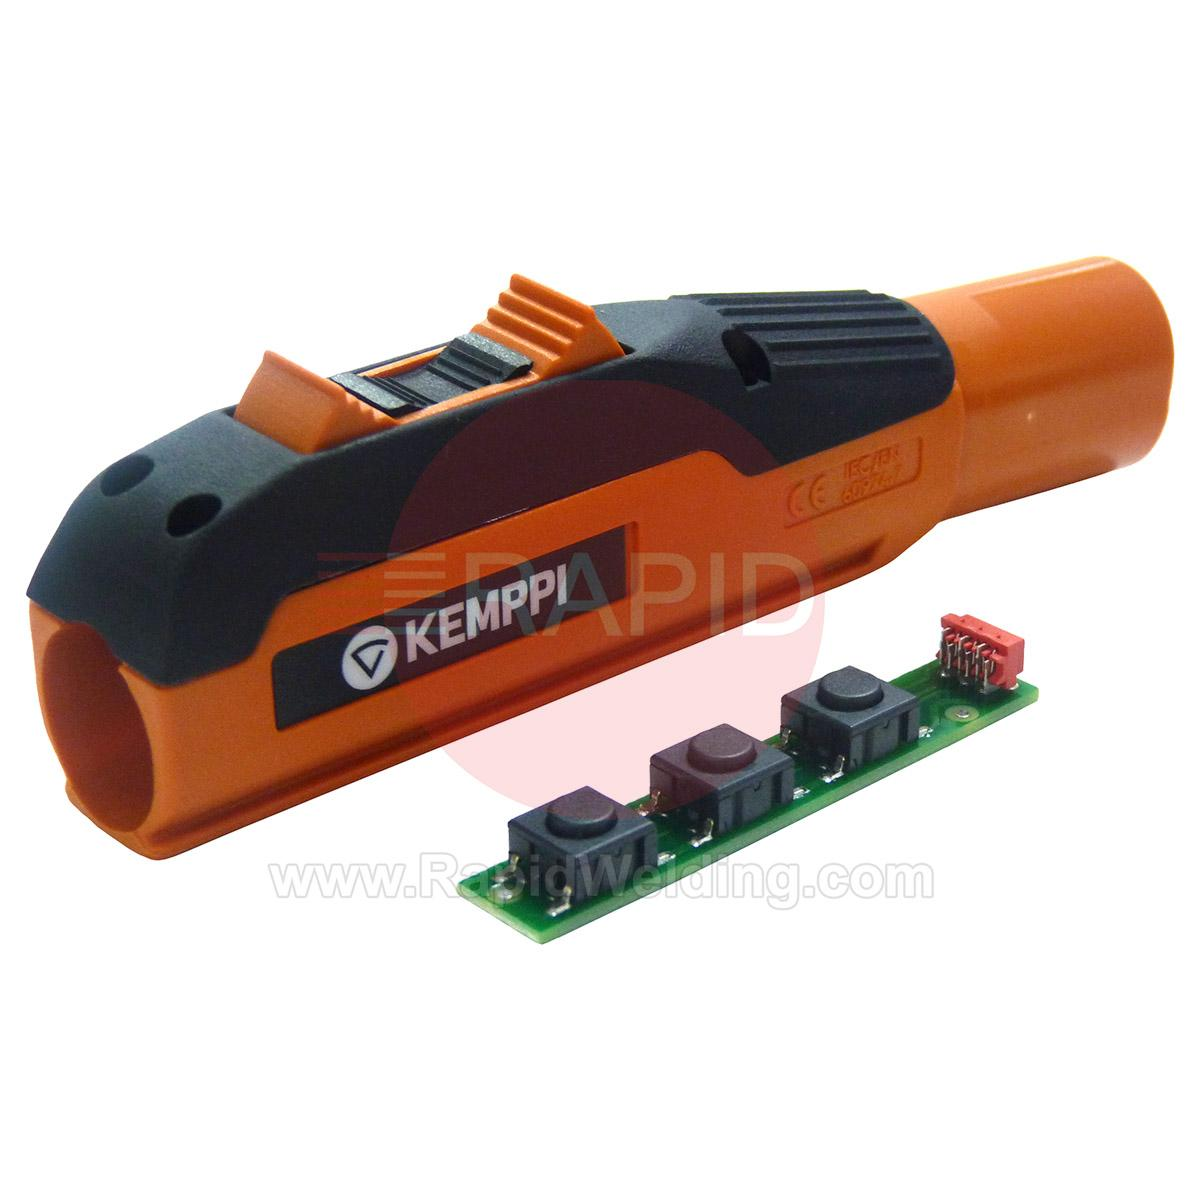 6185478  RTC 20 Linear Torch Amperage Control (For TTC Tig Torches)